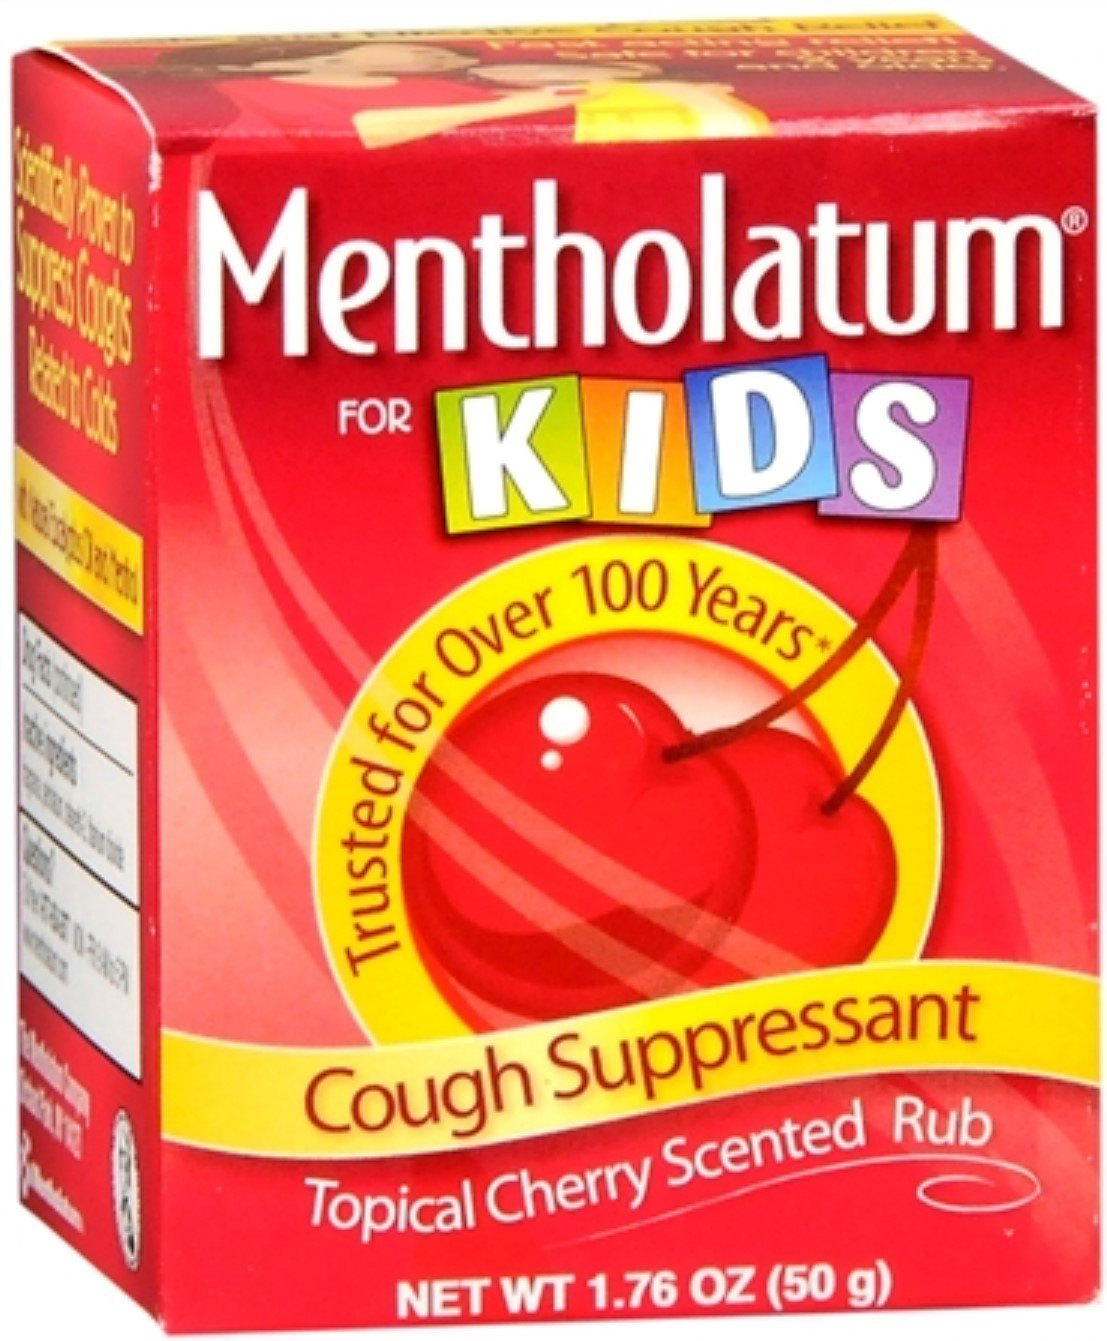 Mentholatum Kids Chst Rub Size 1.76z Mentholatum Kids Cherry Chest Rub 1.76z by Mentholatum